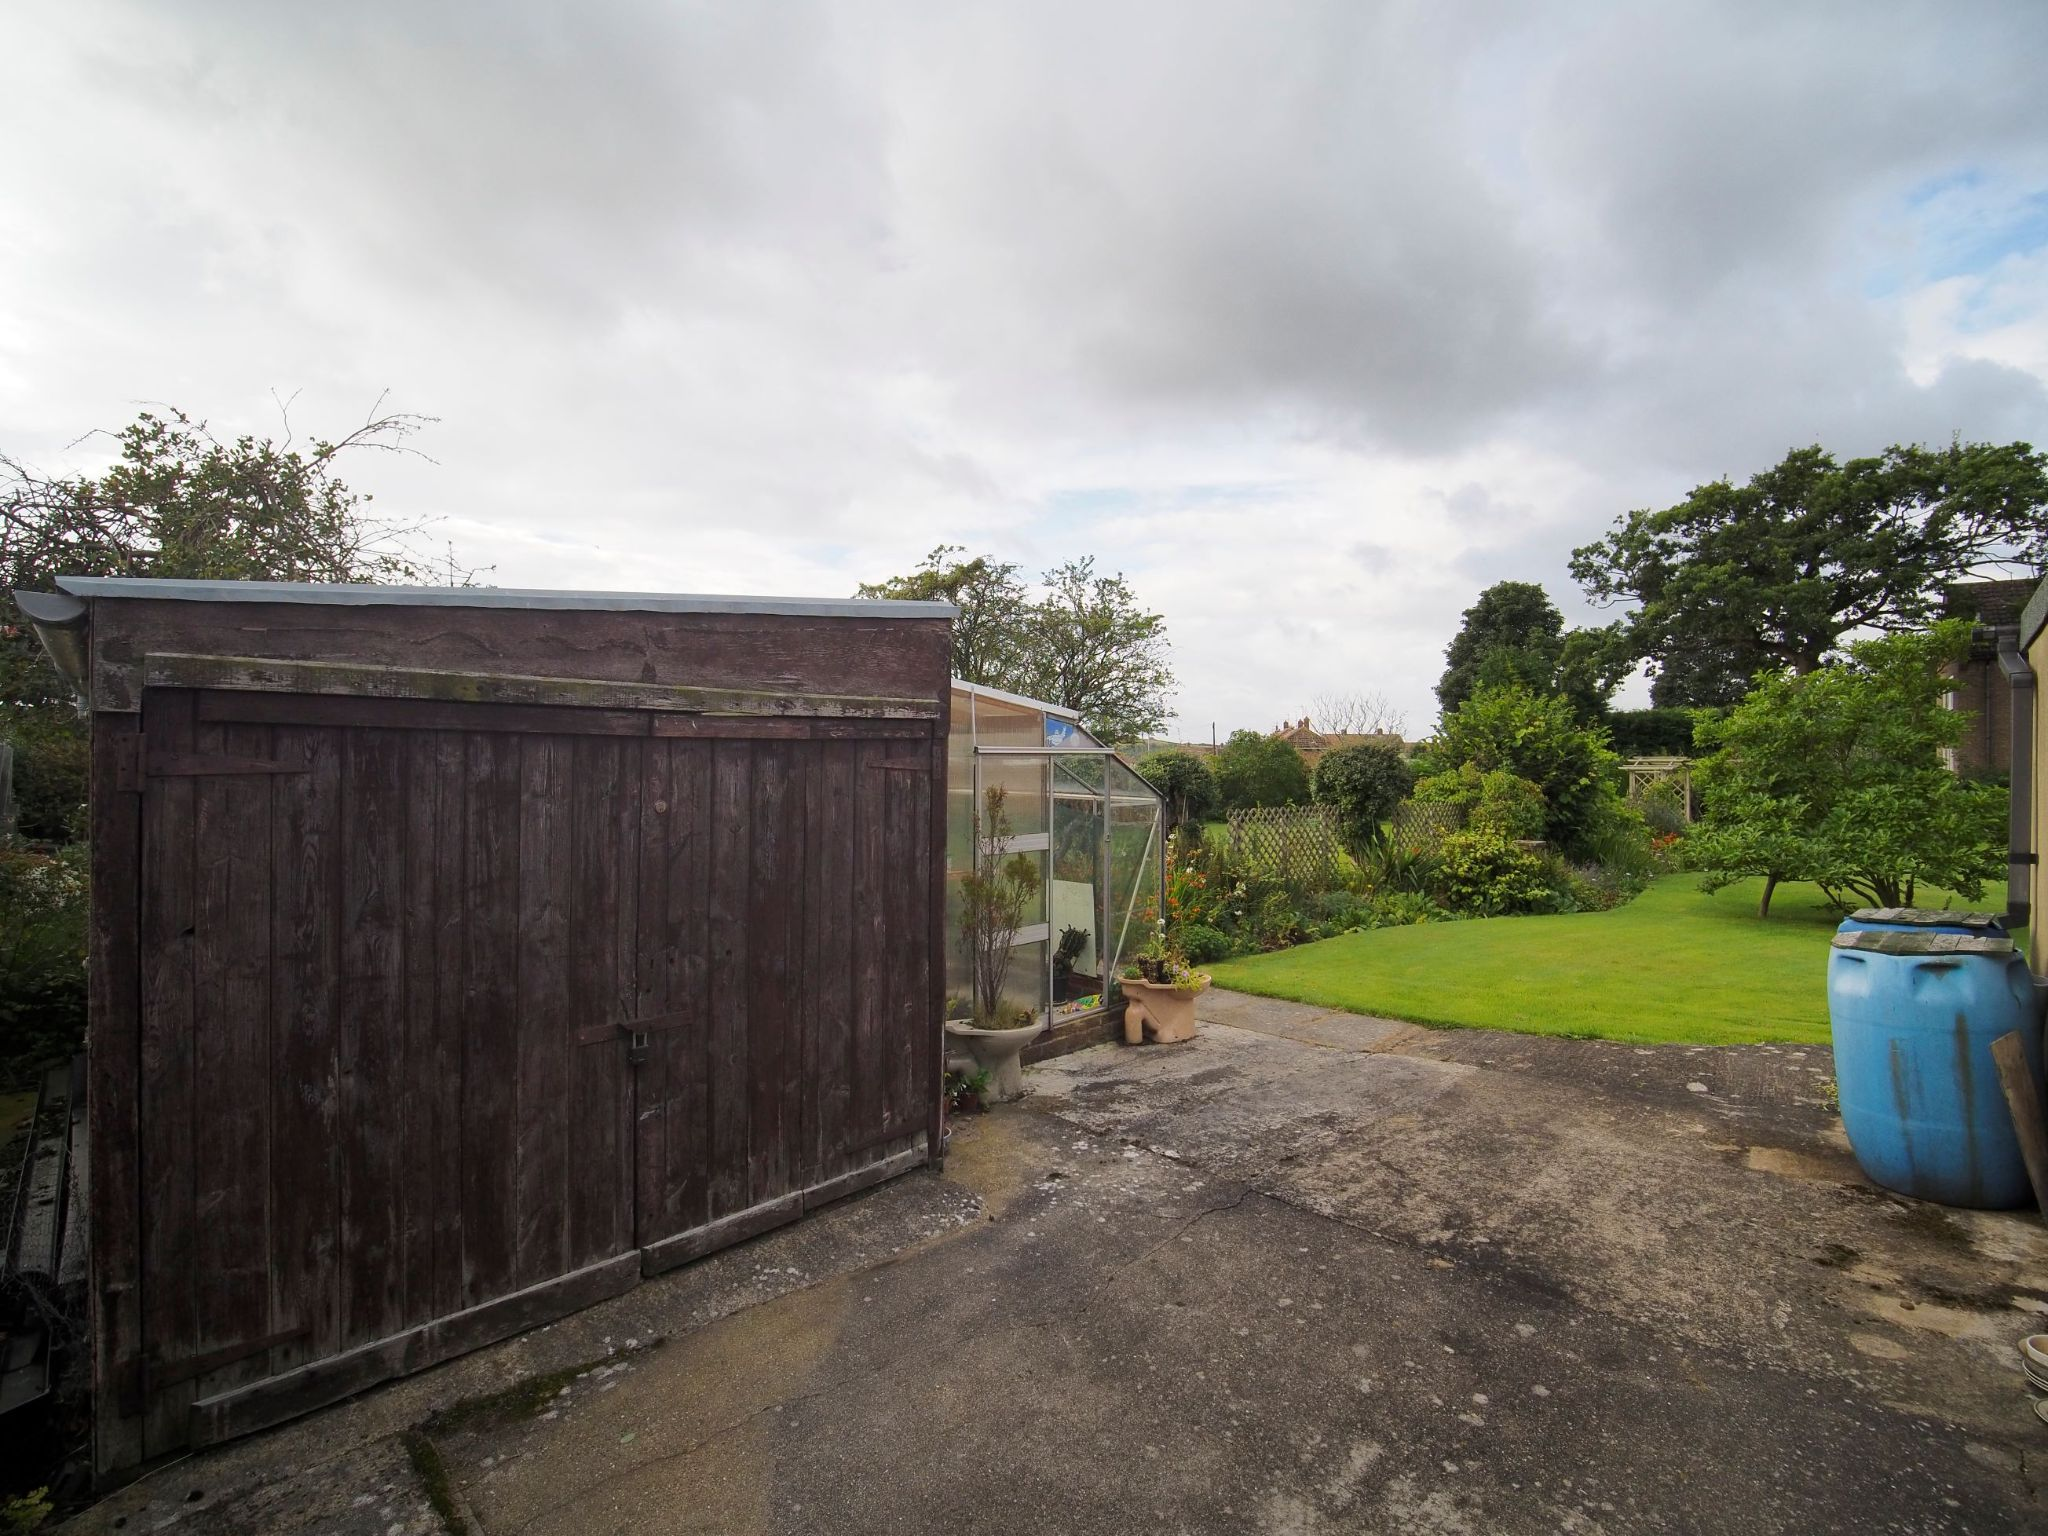 4 bedroom detached house For Sale in Willington - Storage Shed and Greenhouse.